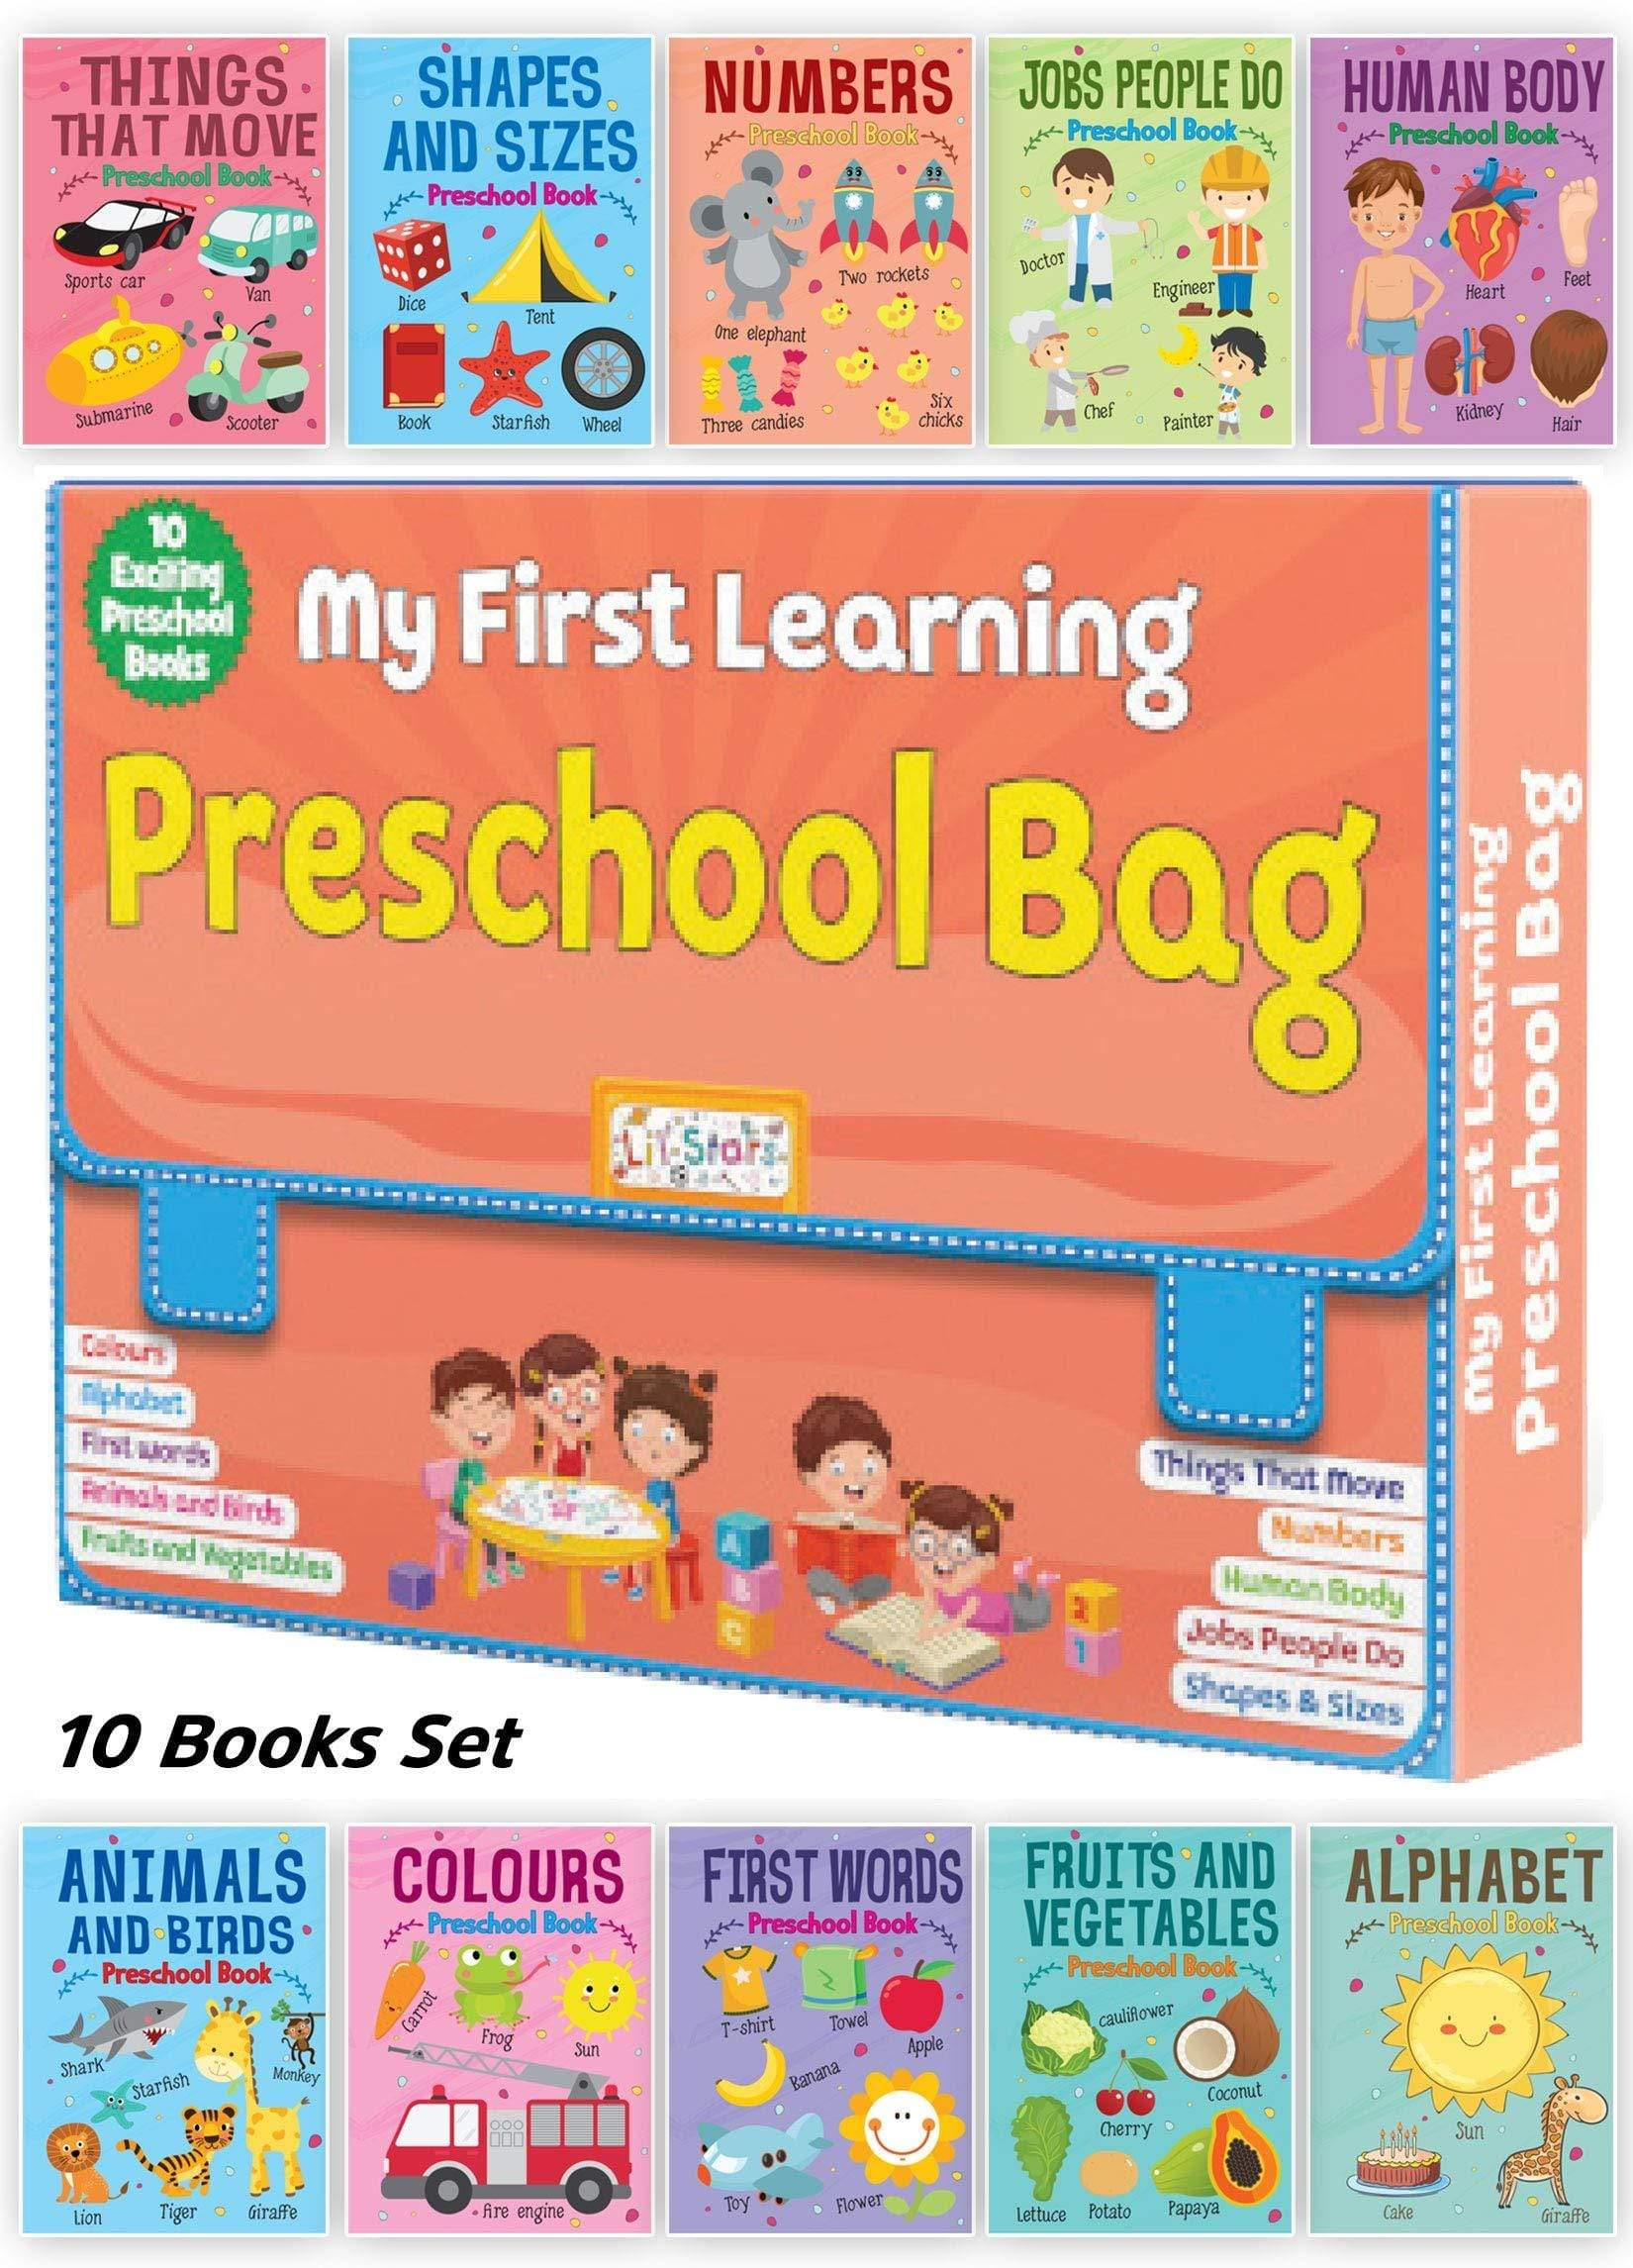 My First Learning Preschool Bag - Set of 10 Exciting Preschool Books